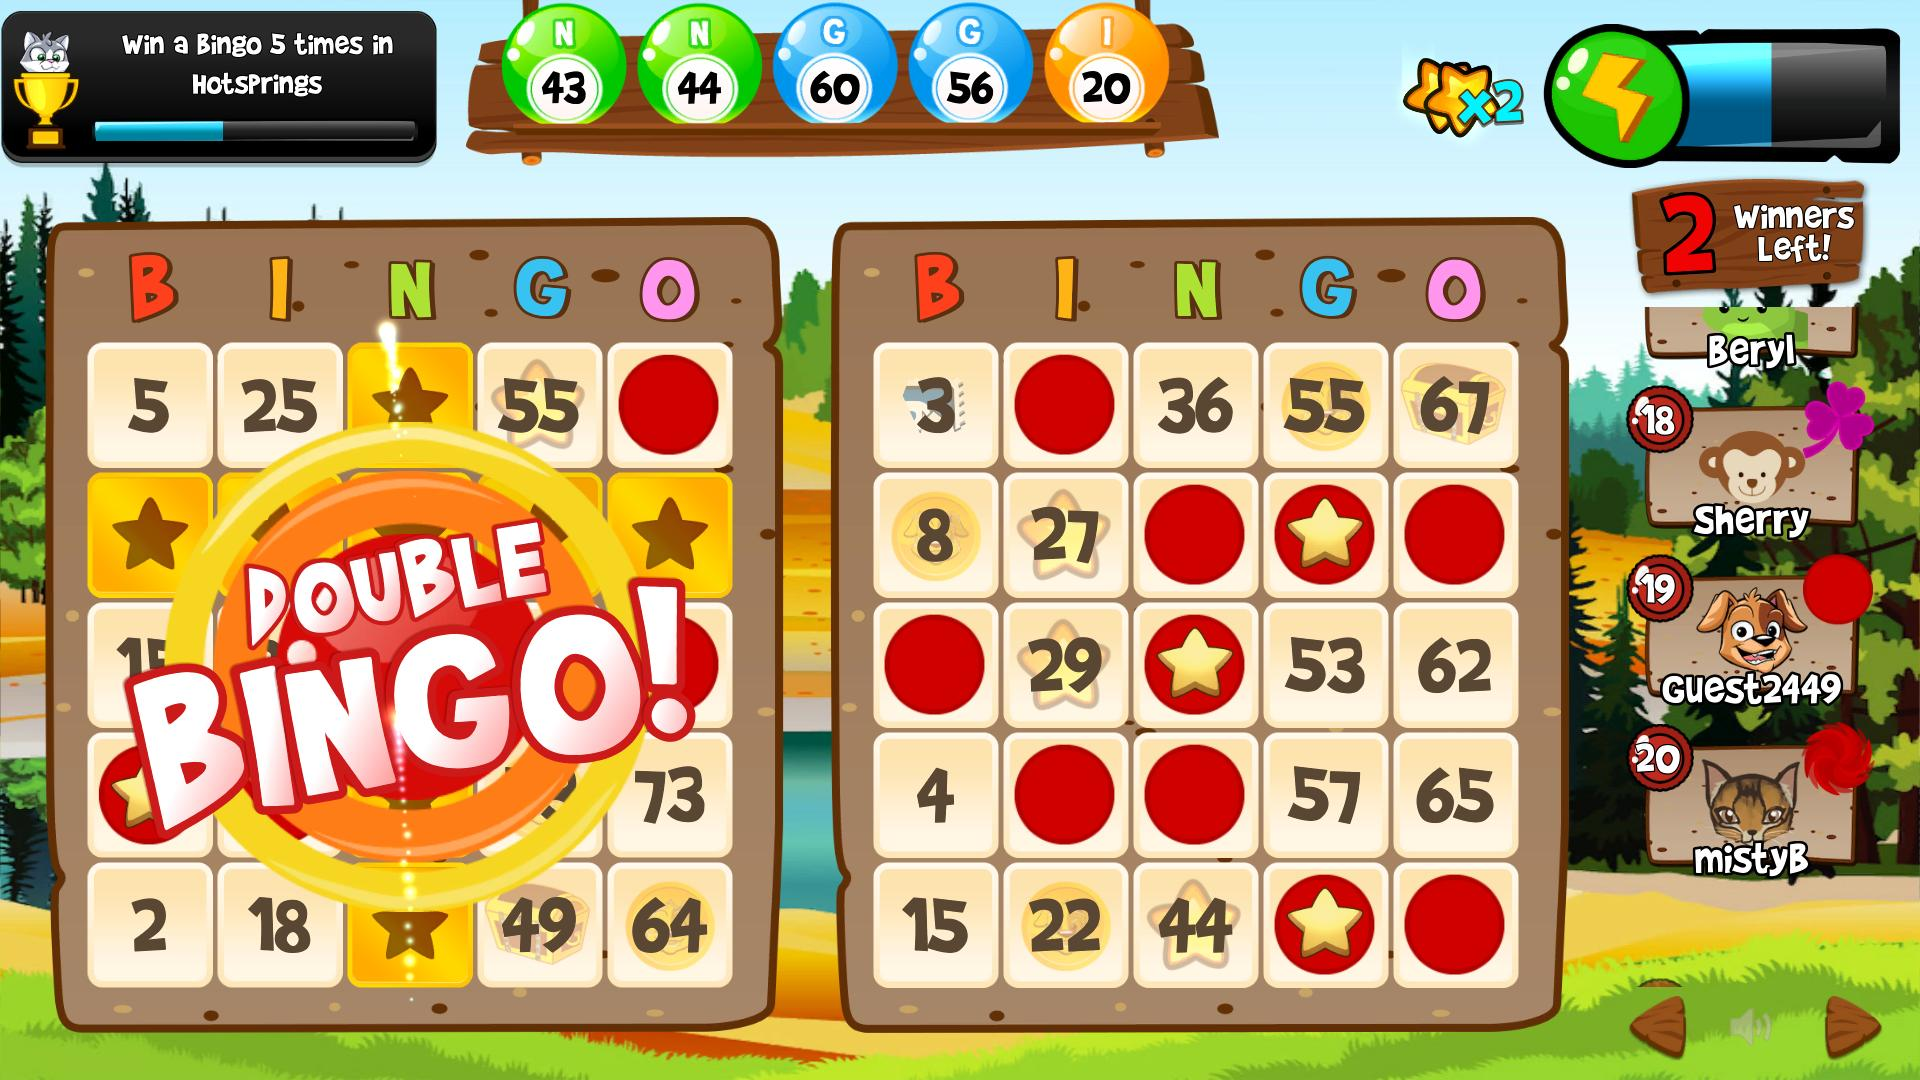 Bingo Abradoodle - Bingo Games Free to Play! 3.0.02 Screenshot 13